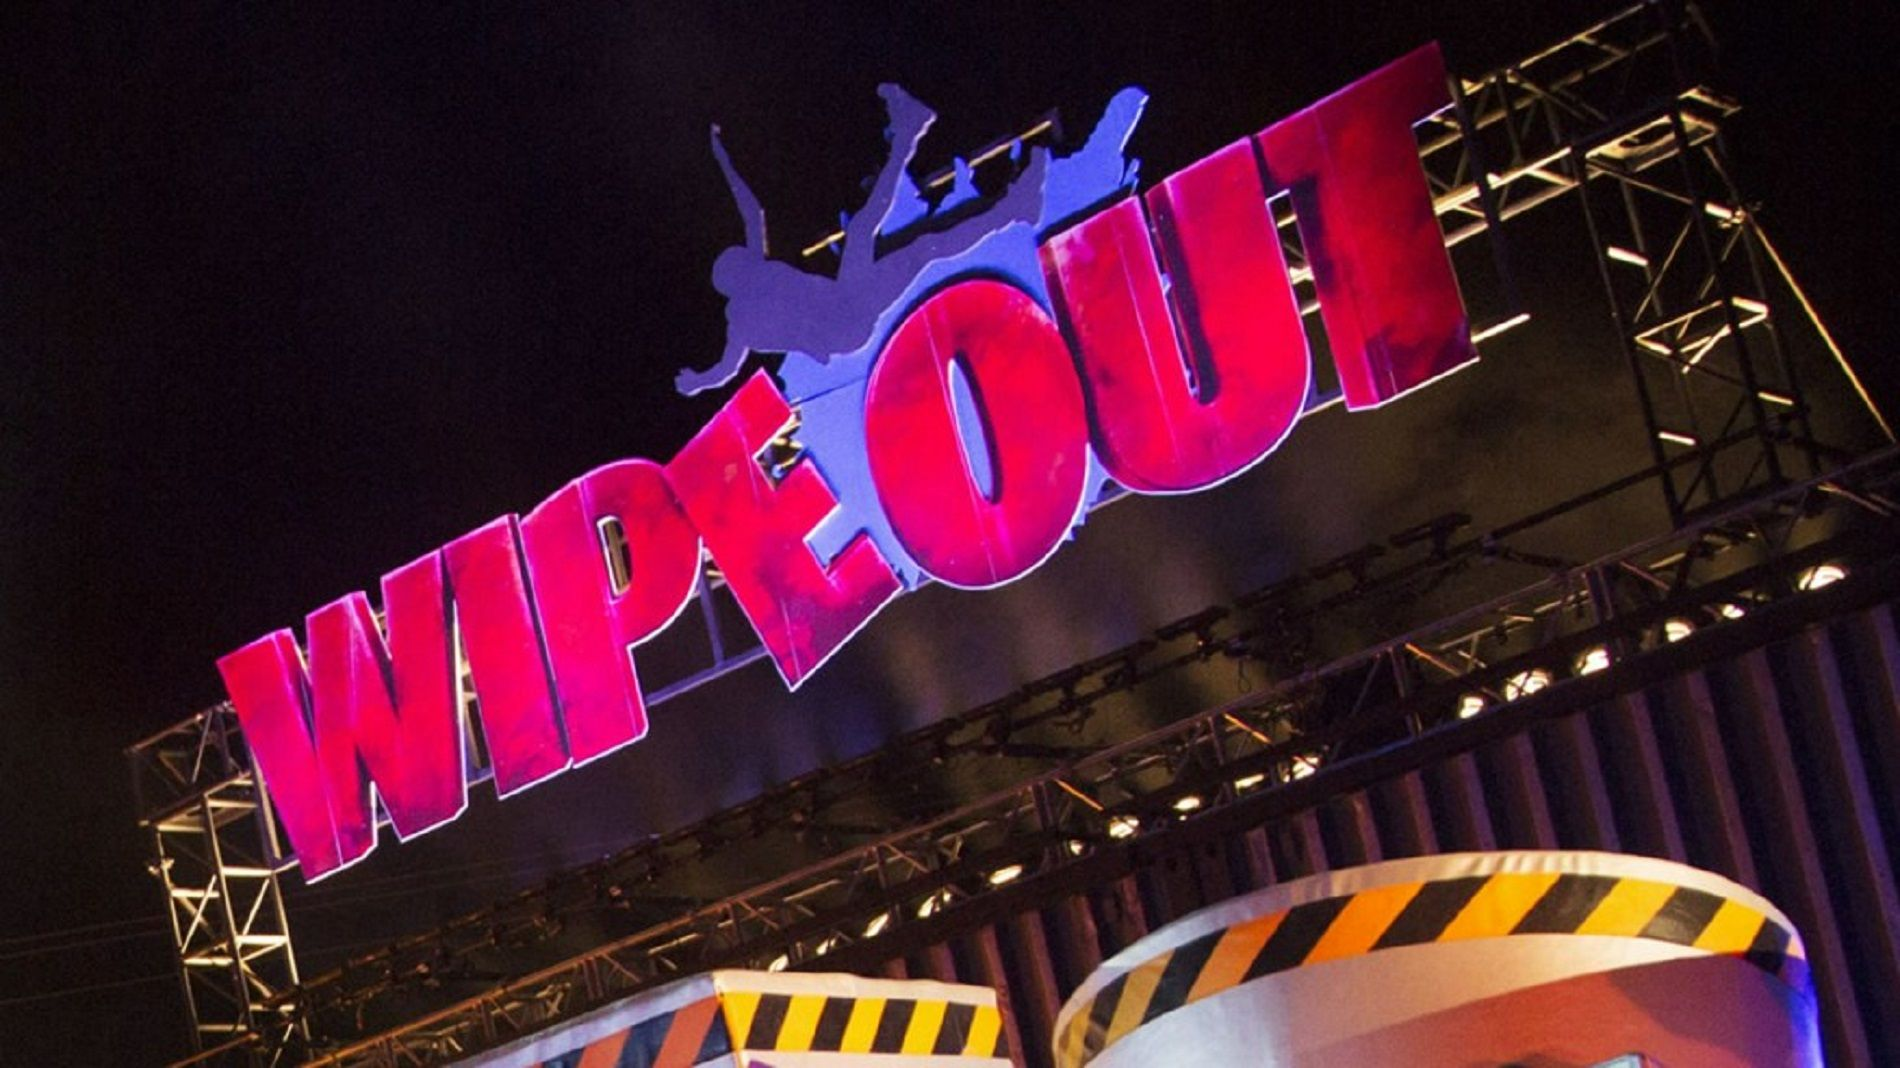 Wipeout / Twitter